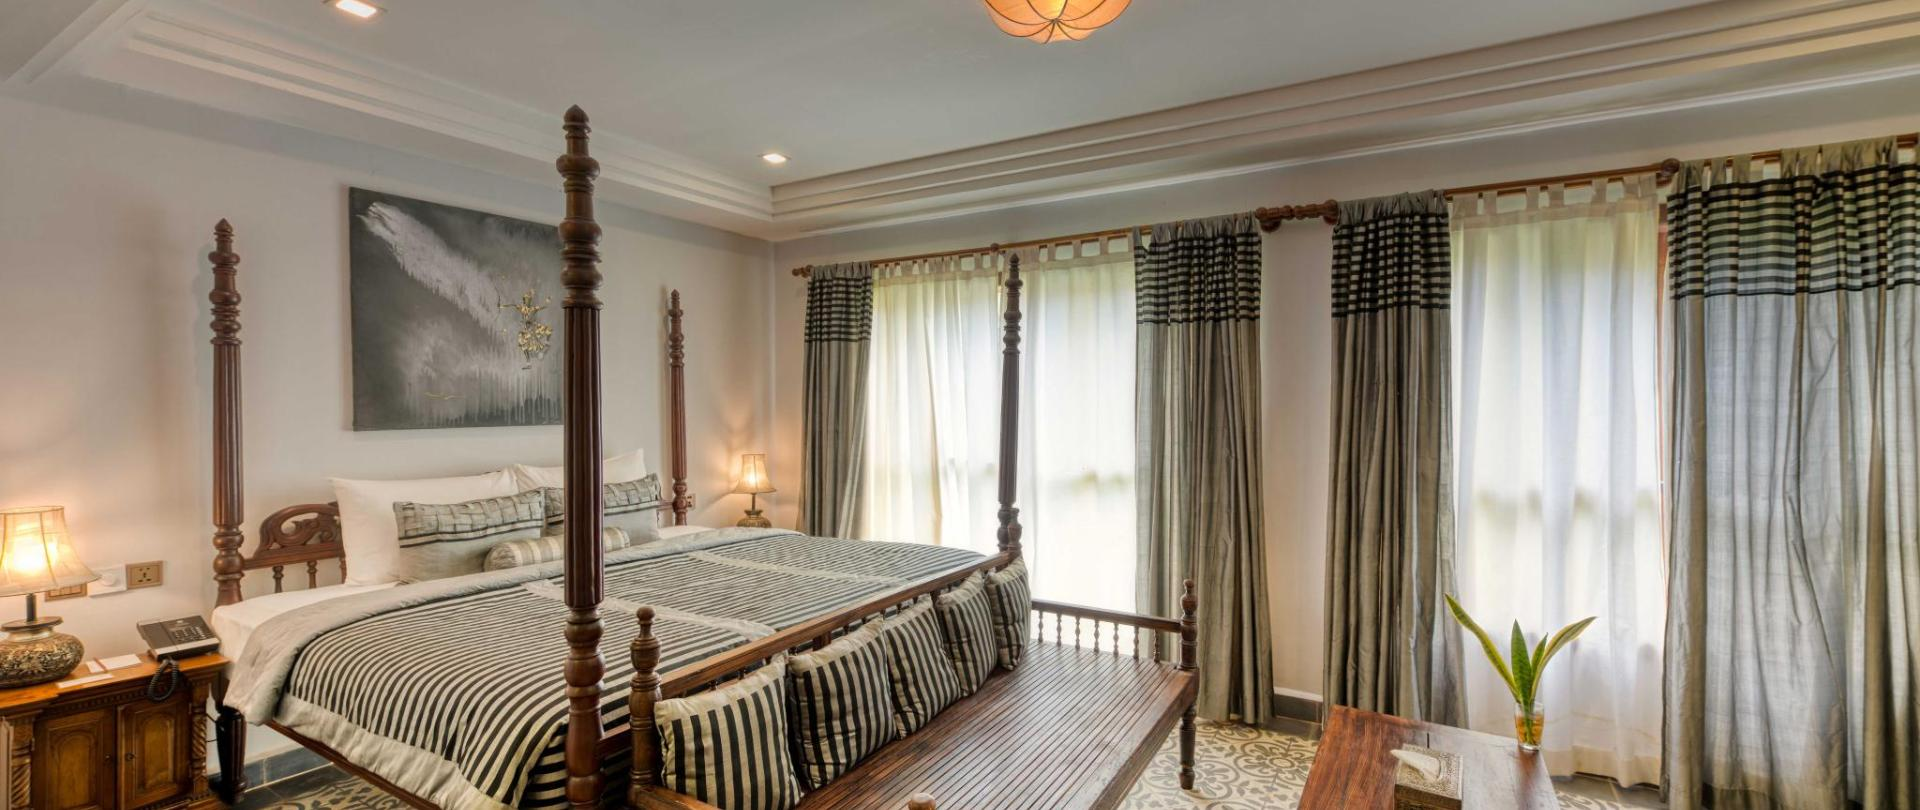 Historical Honeymoon Suite - Bedroom